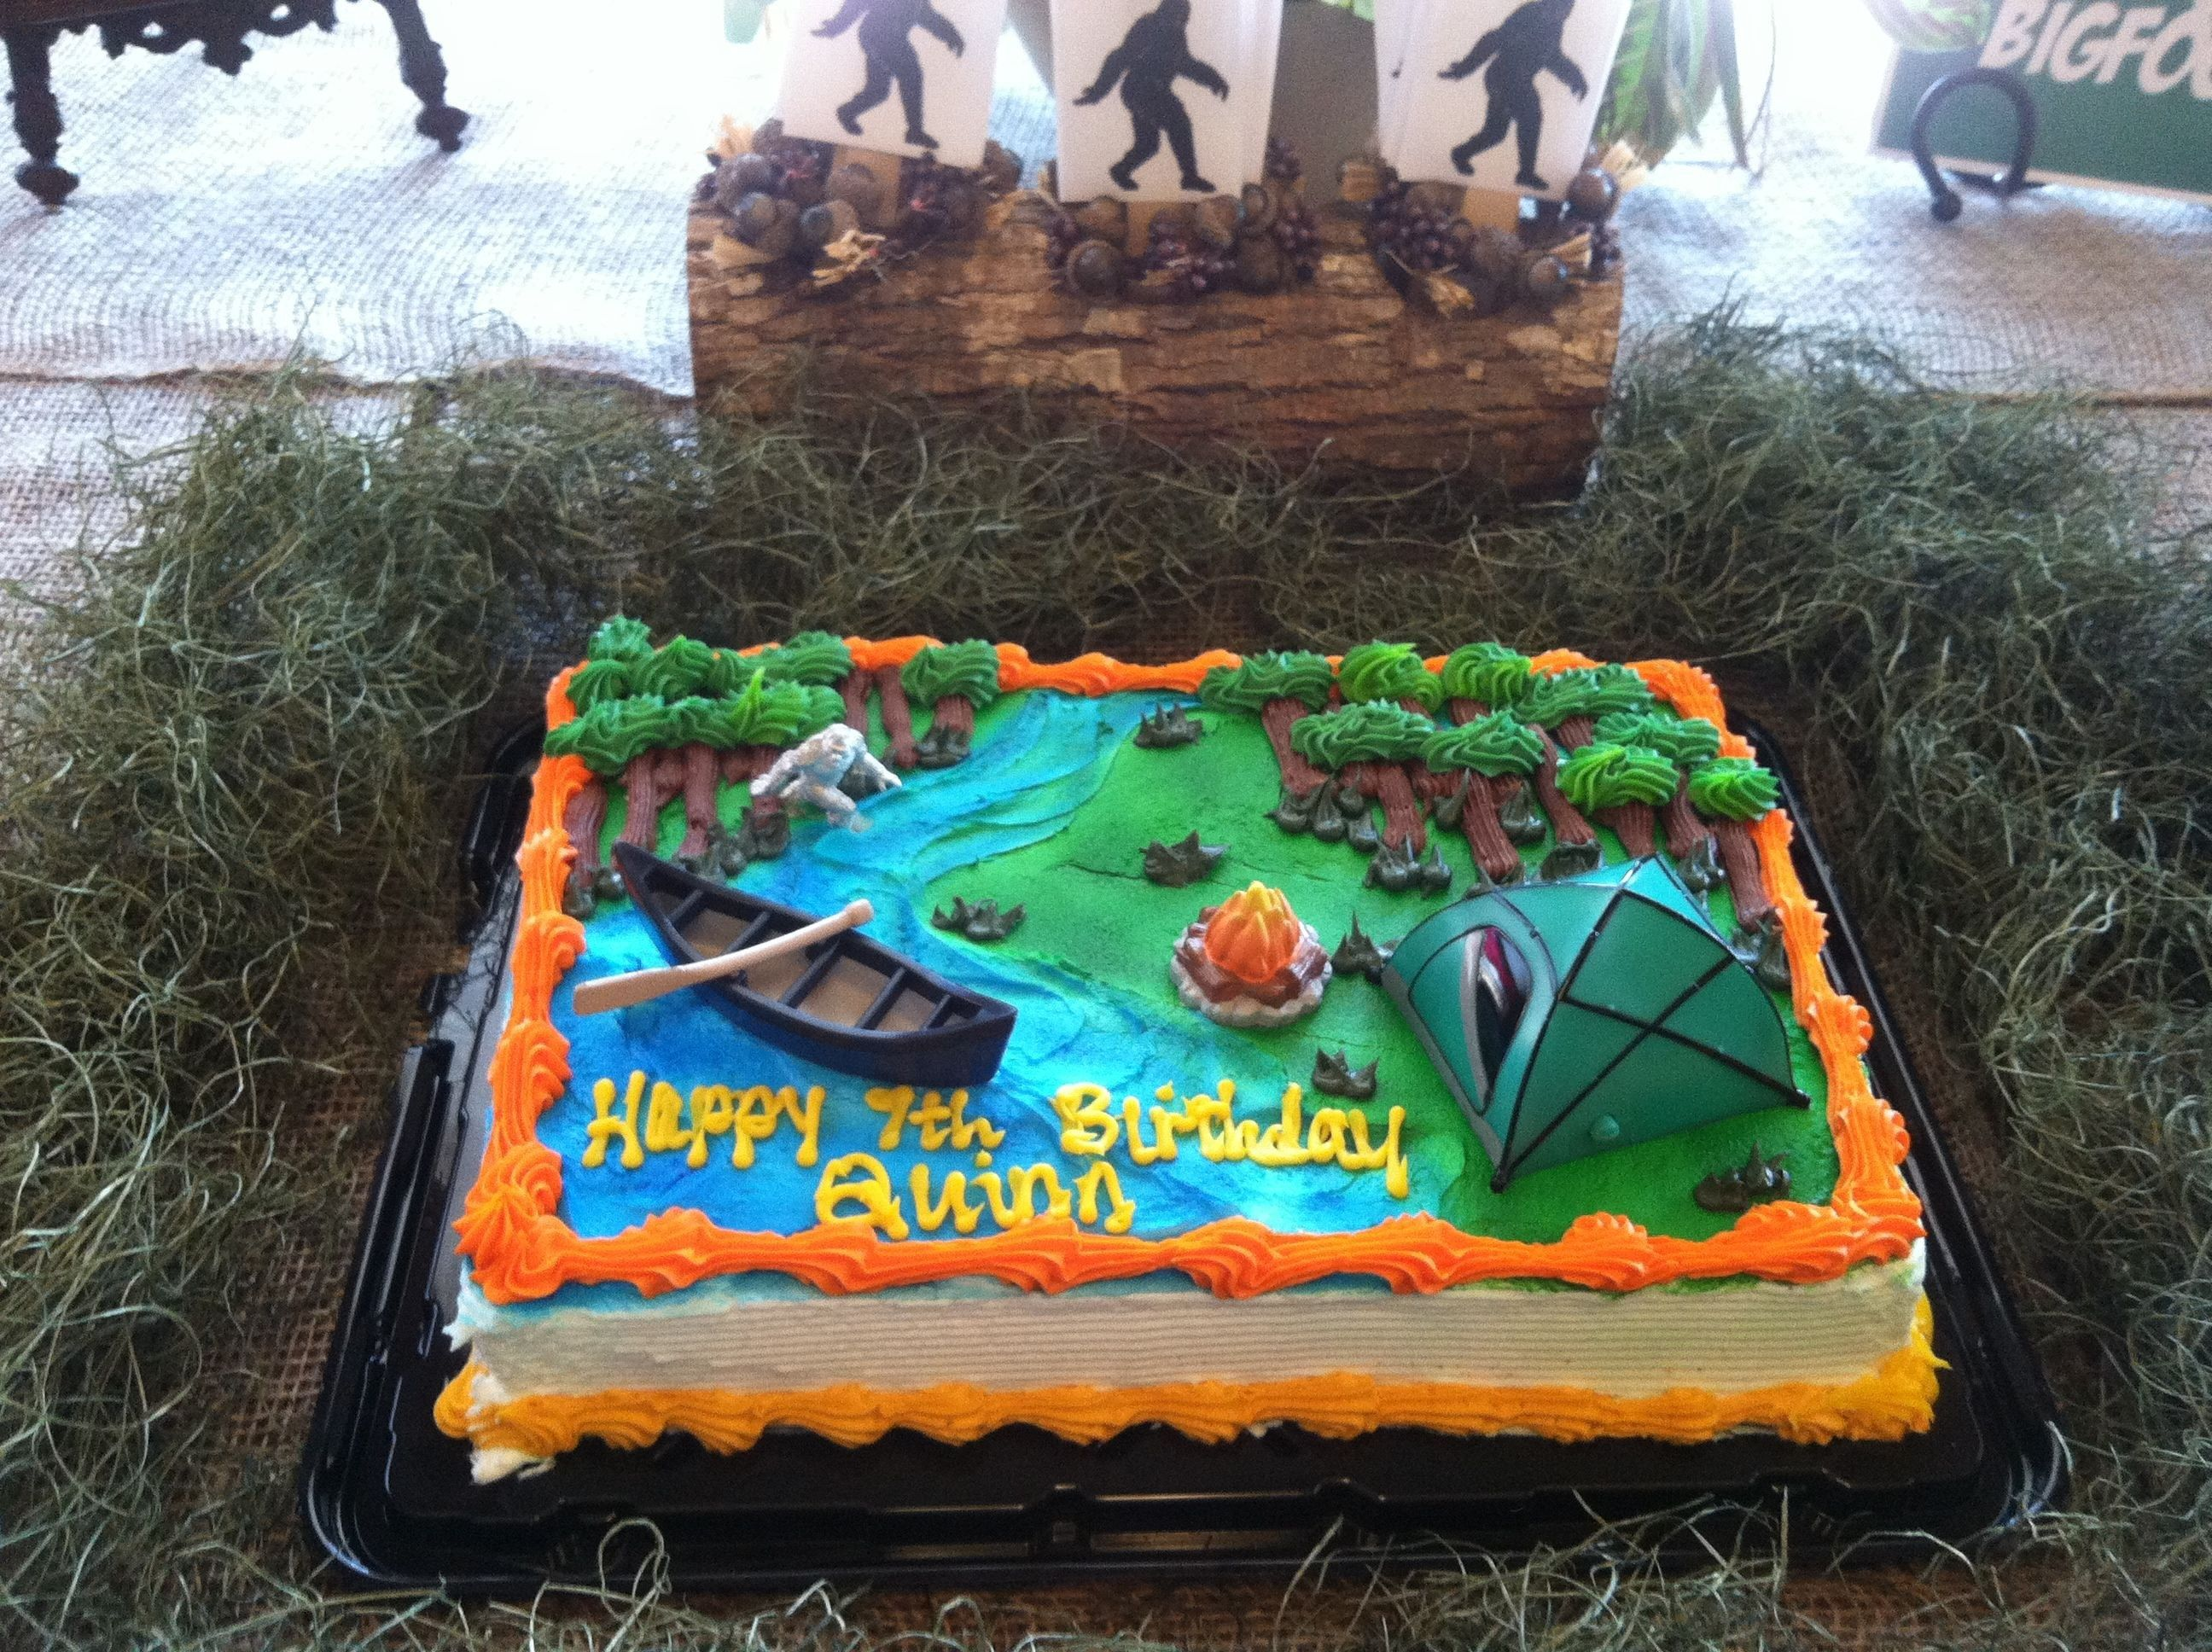 25 Creative Picture Of Kroger Bakery Birthday Cakes Yes Its Hard To Find A Bigfoot Cake